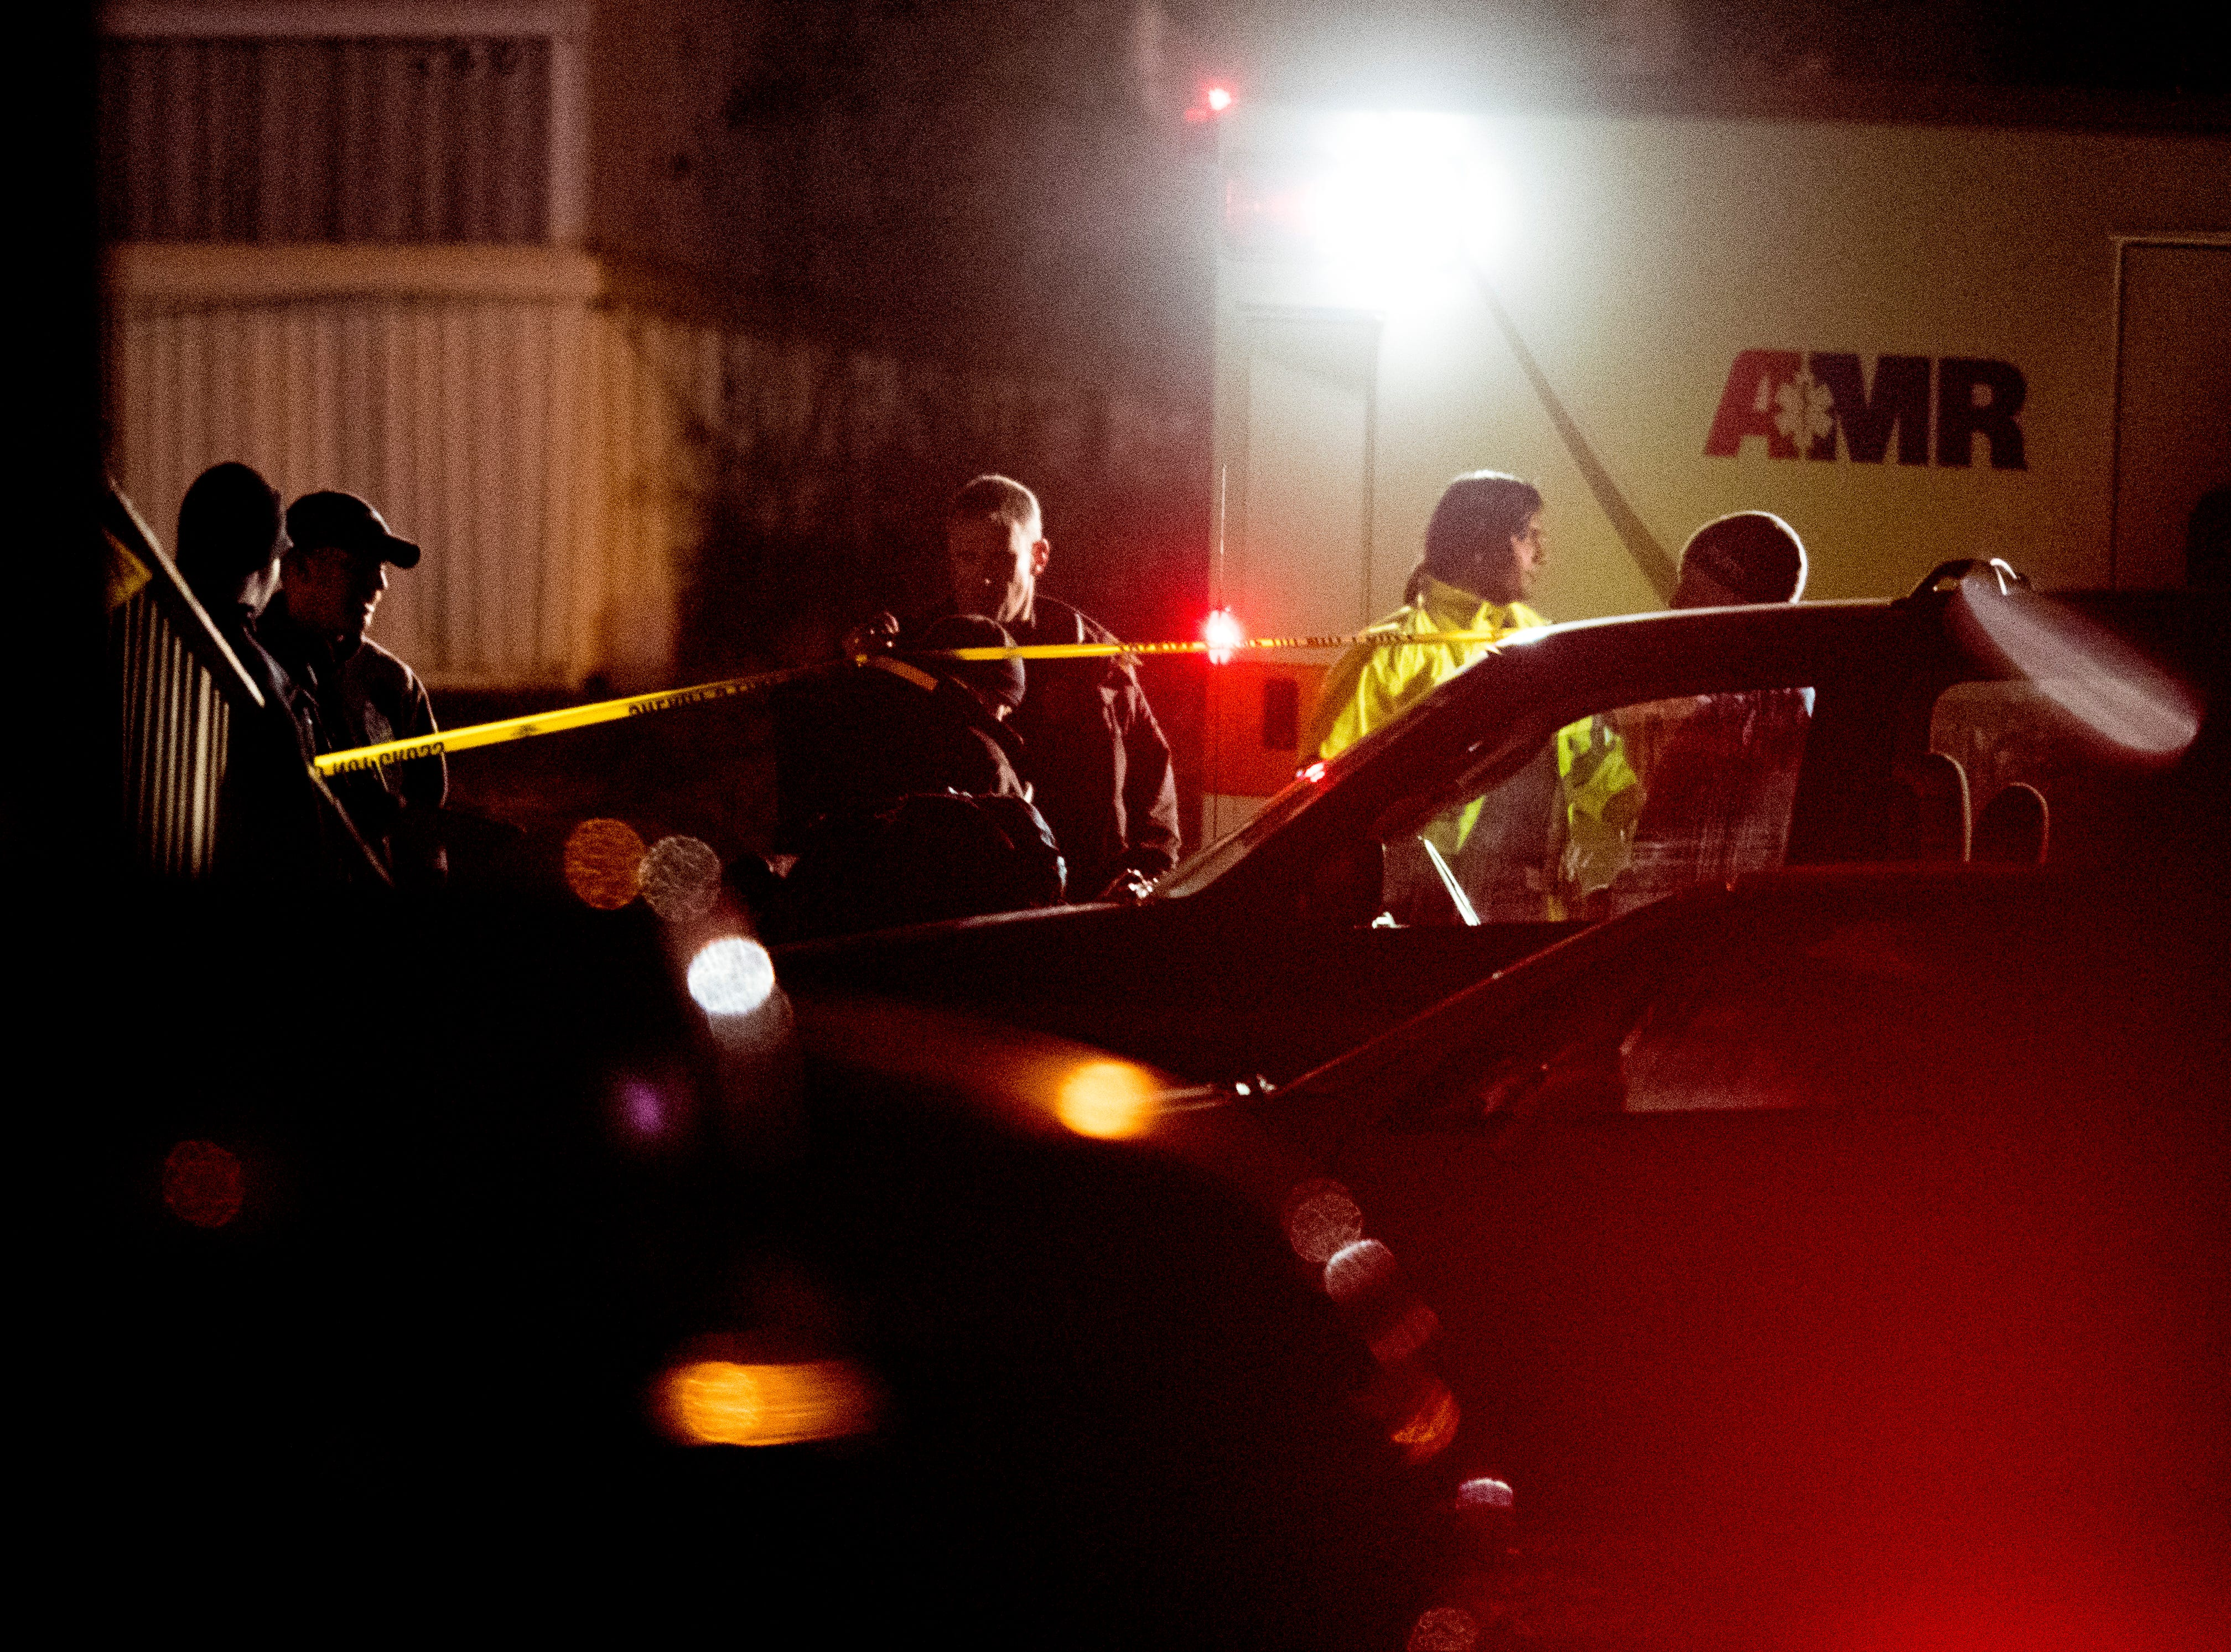 Investigators at the scene of a shooting on Forest Edge Way in Knoxville, Tennessee on Saturday, November 10, 2018. One victim was confirmed dead at the scene and a second injured.